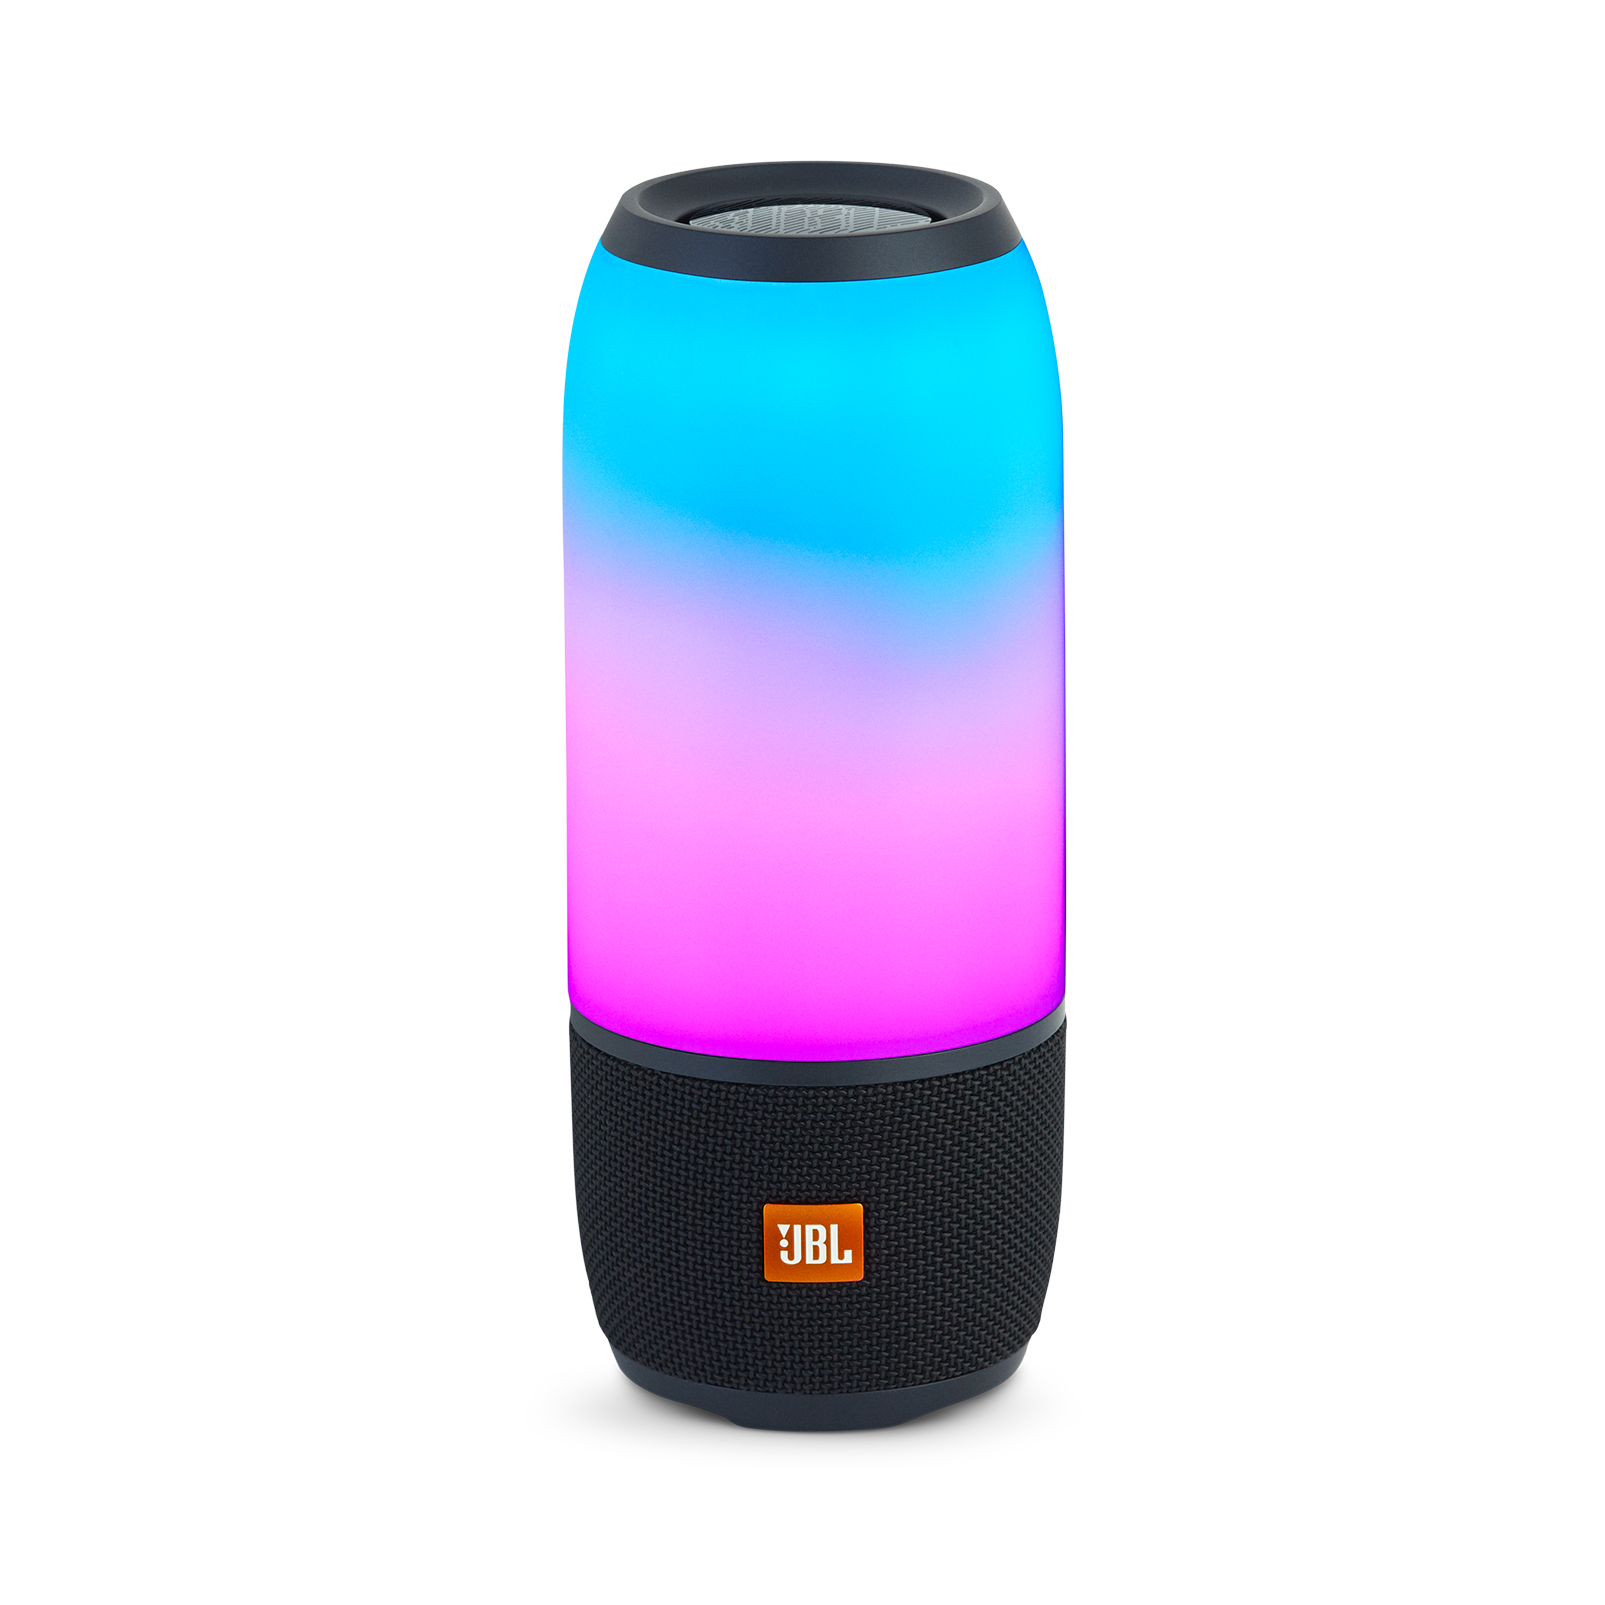 jbl pulse 3 waterproof bluetooth speaker with 360 lightshow. Black Bedroom Furniture Sets. Home Design Ideas